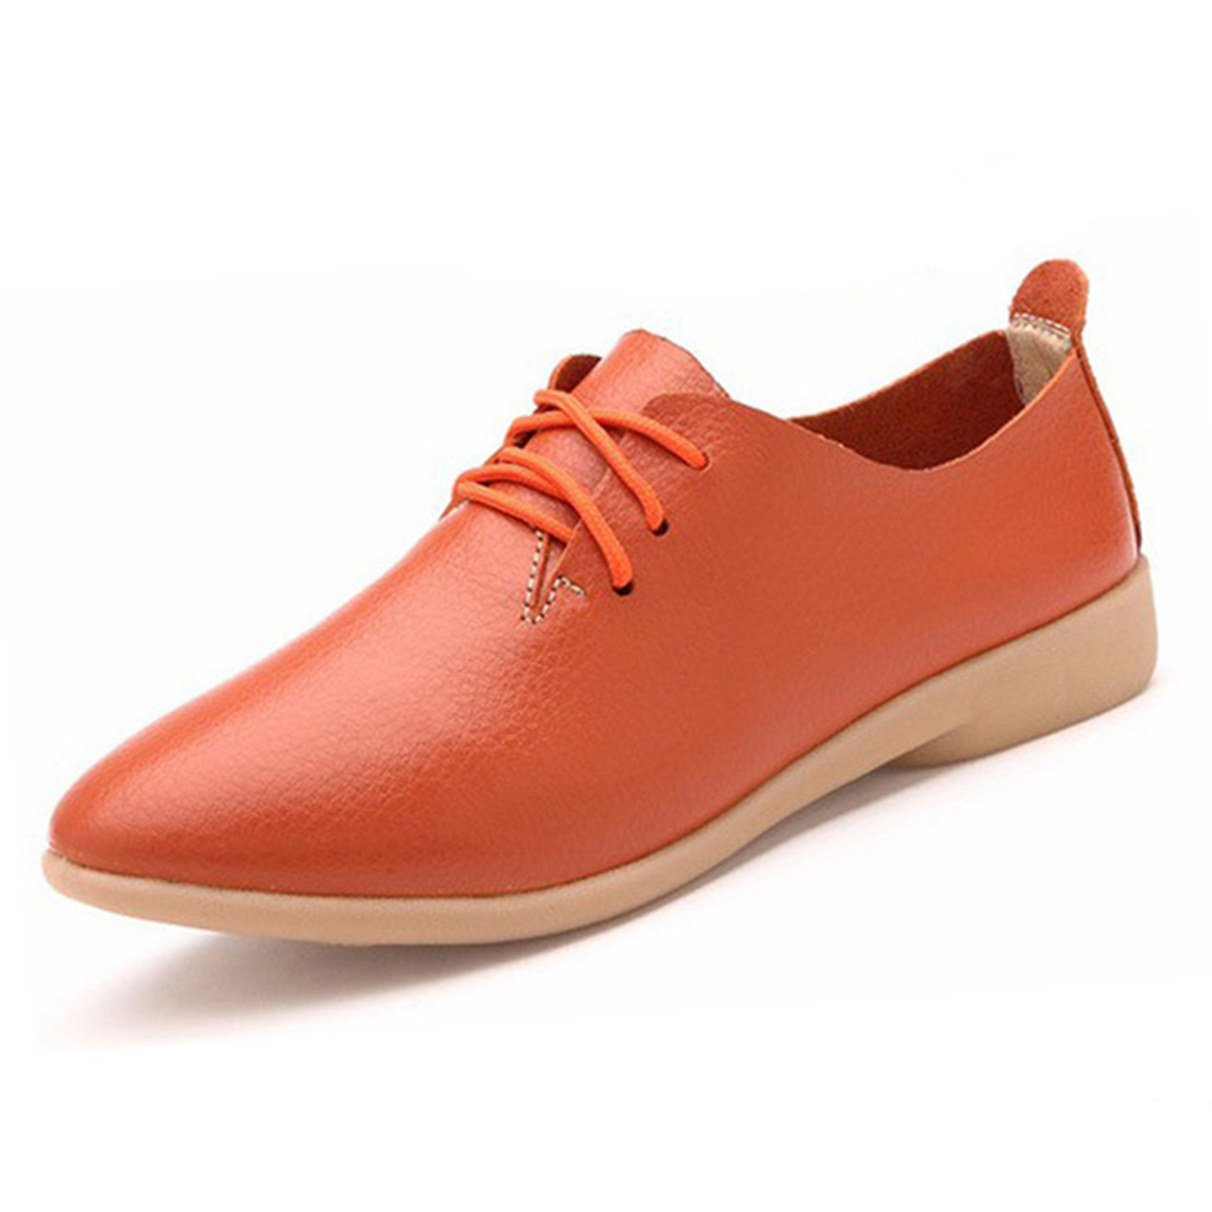 York Zhu Oxford Shoes Women, Lace up Pointed Toe Casual Shoes, Women Loafers Shoes